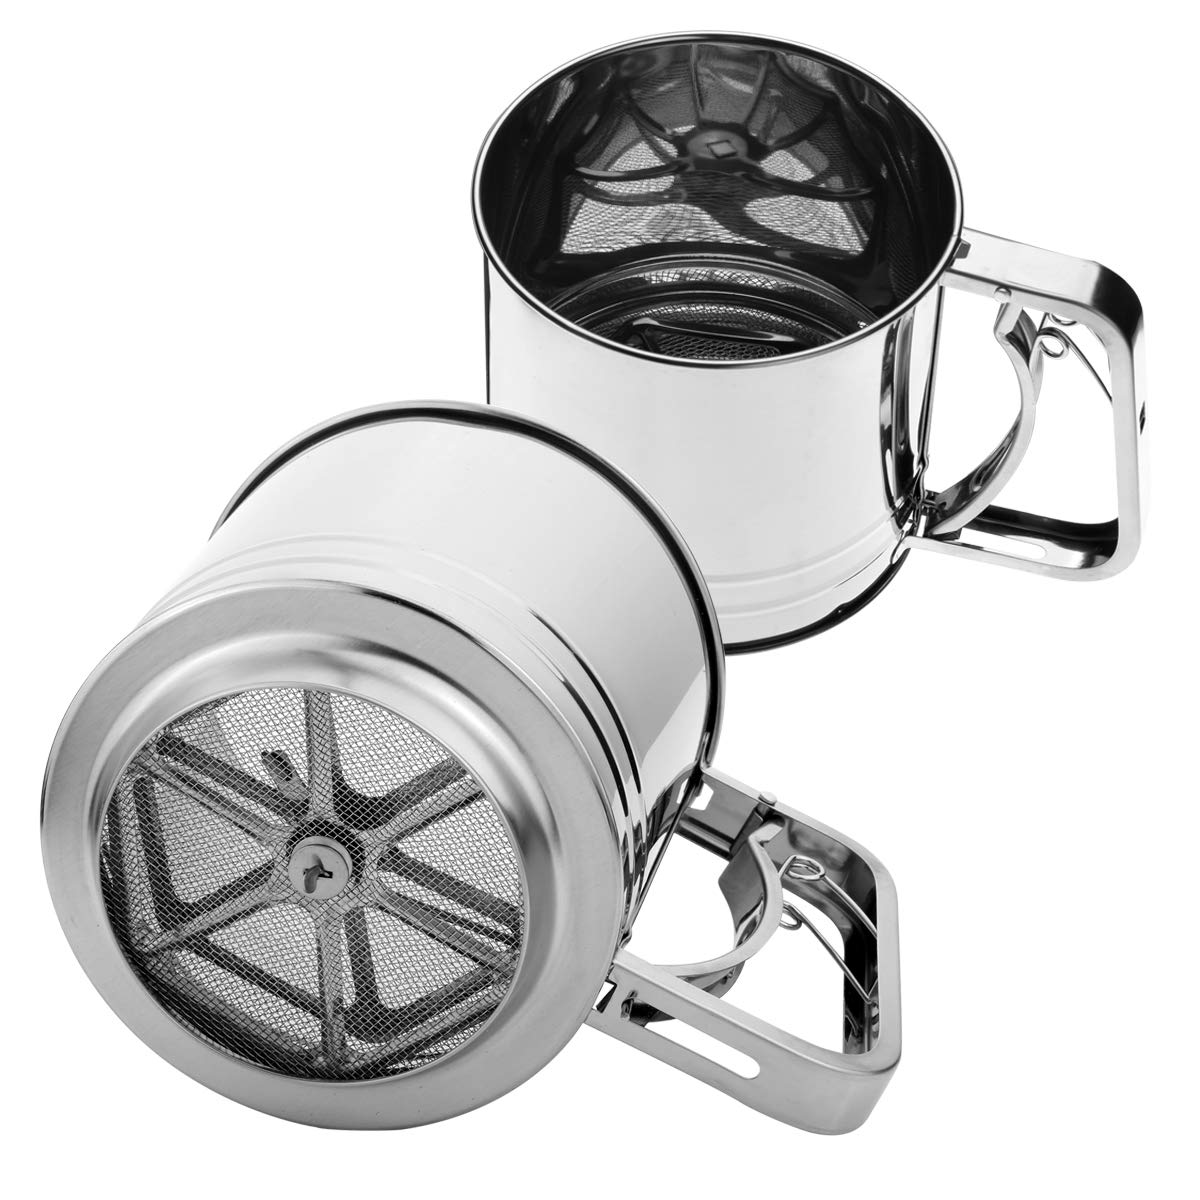 Stephenie Hand Squeeze Flour Sifter - Stainless Steel - 3 Cup Capacity by Szxc